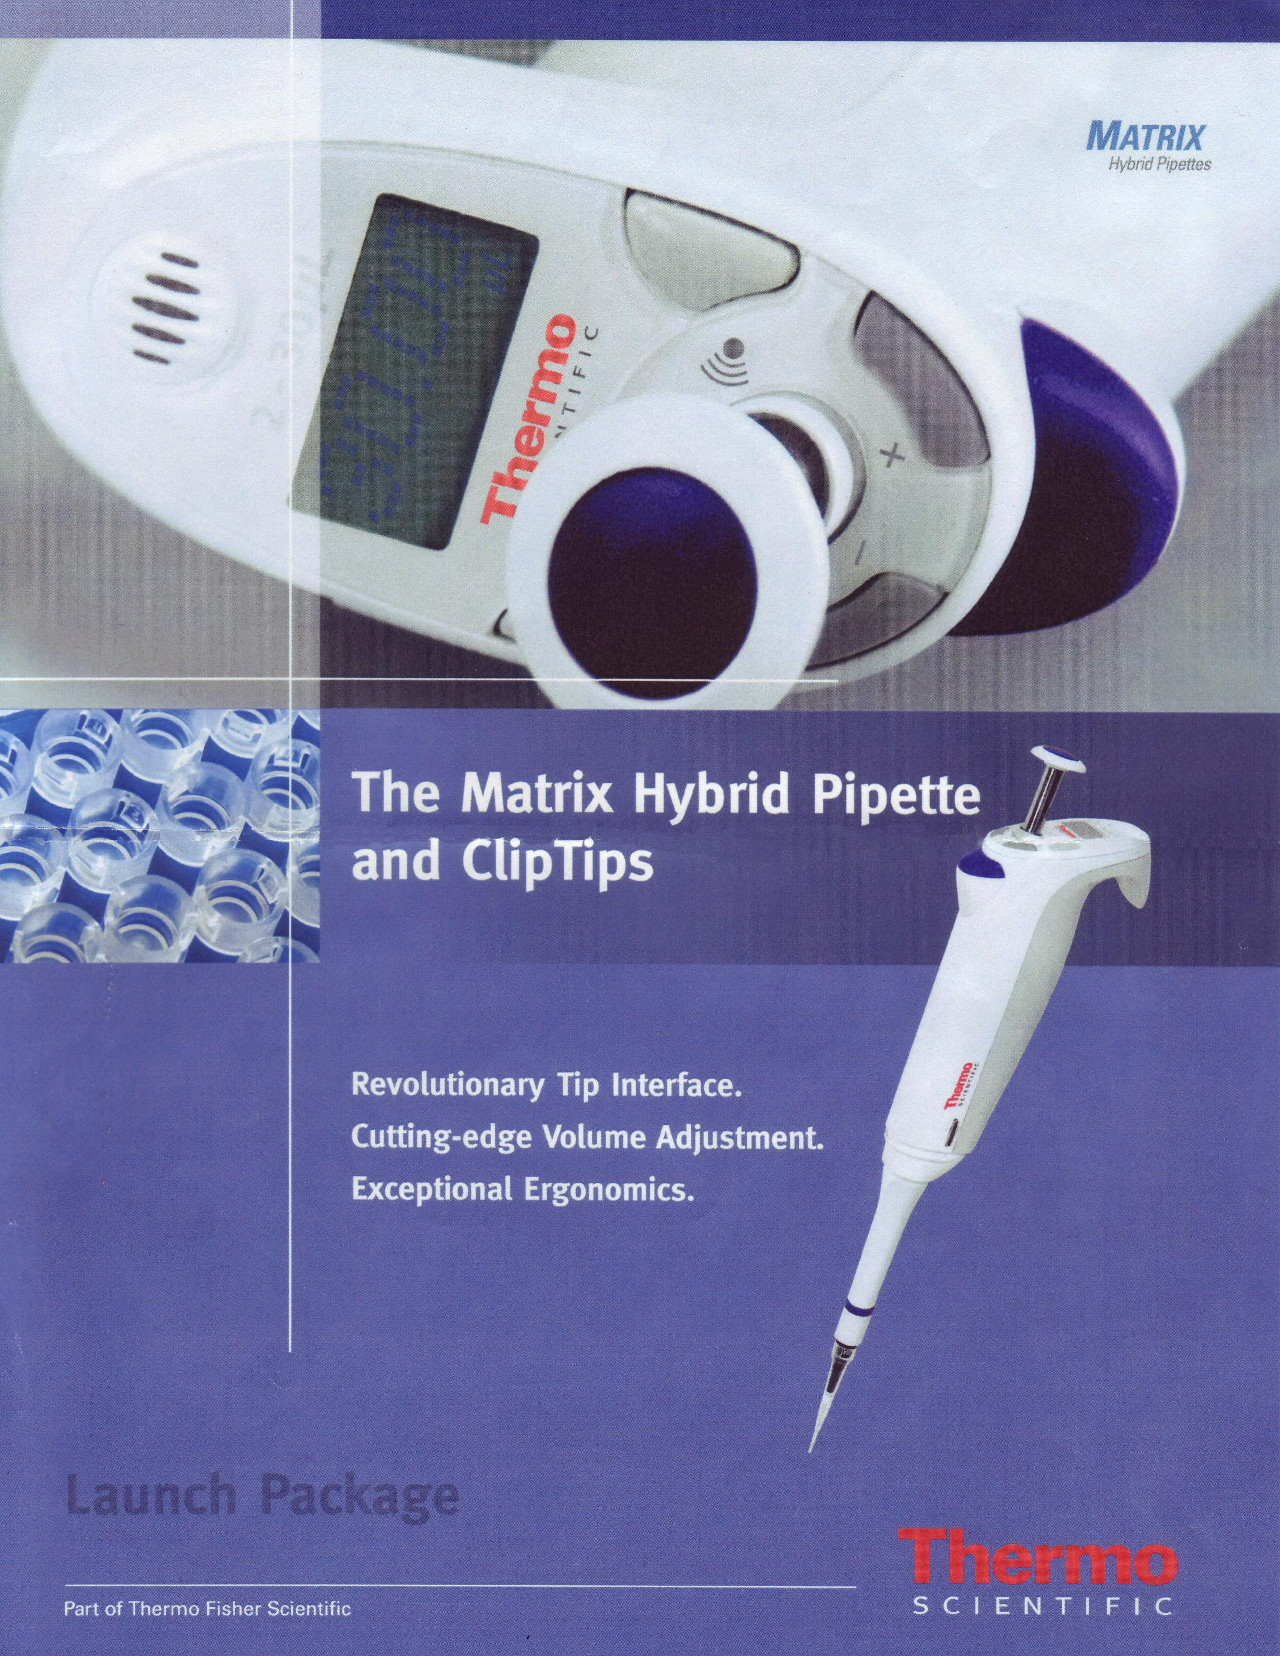 Development of Matrix pipetting system for Themo Fisher